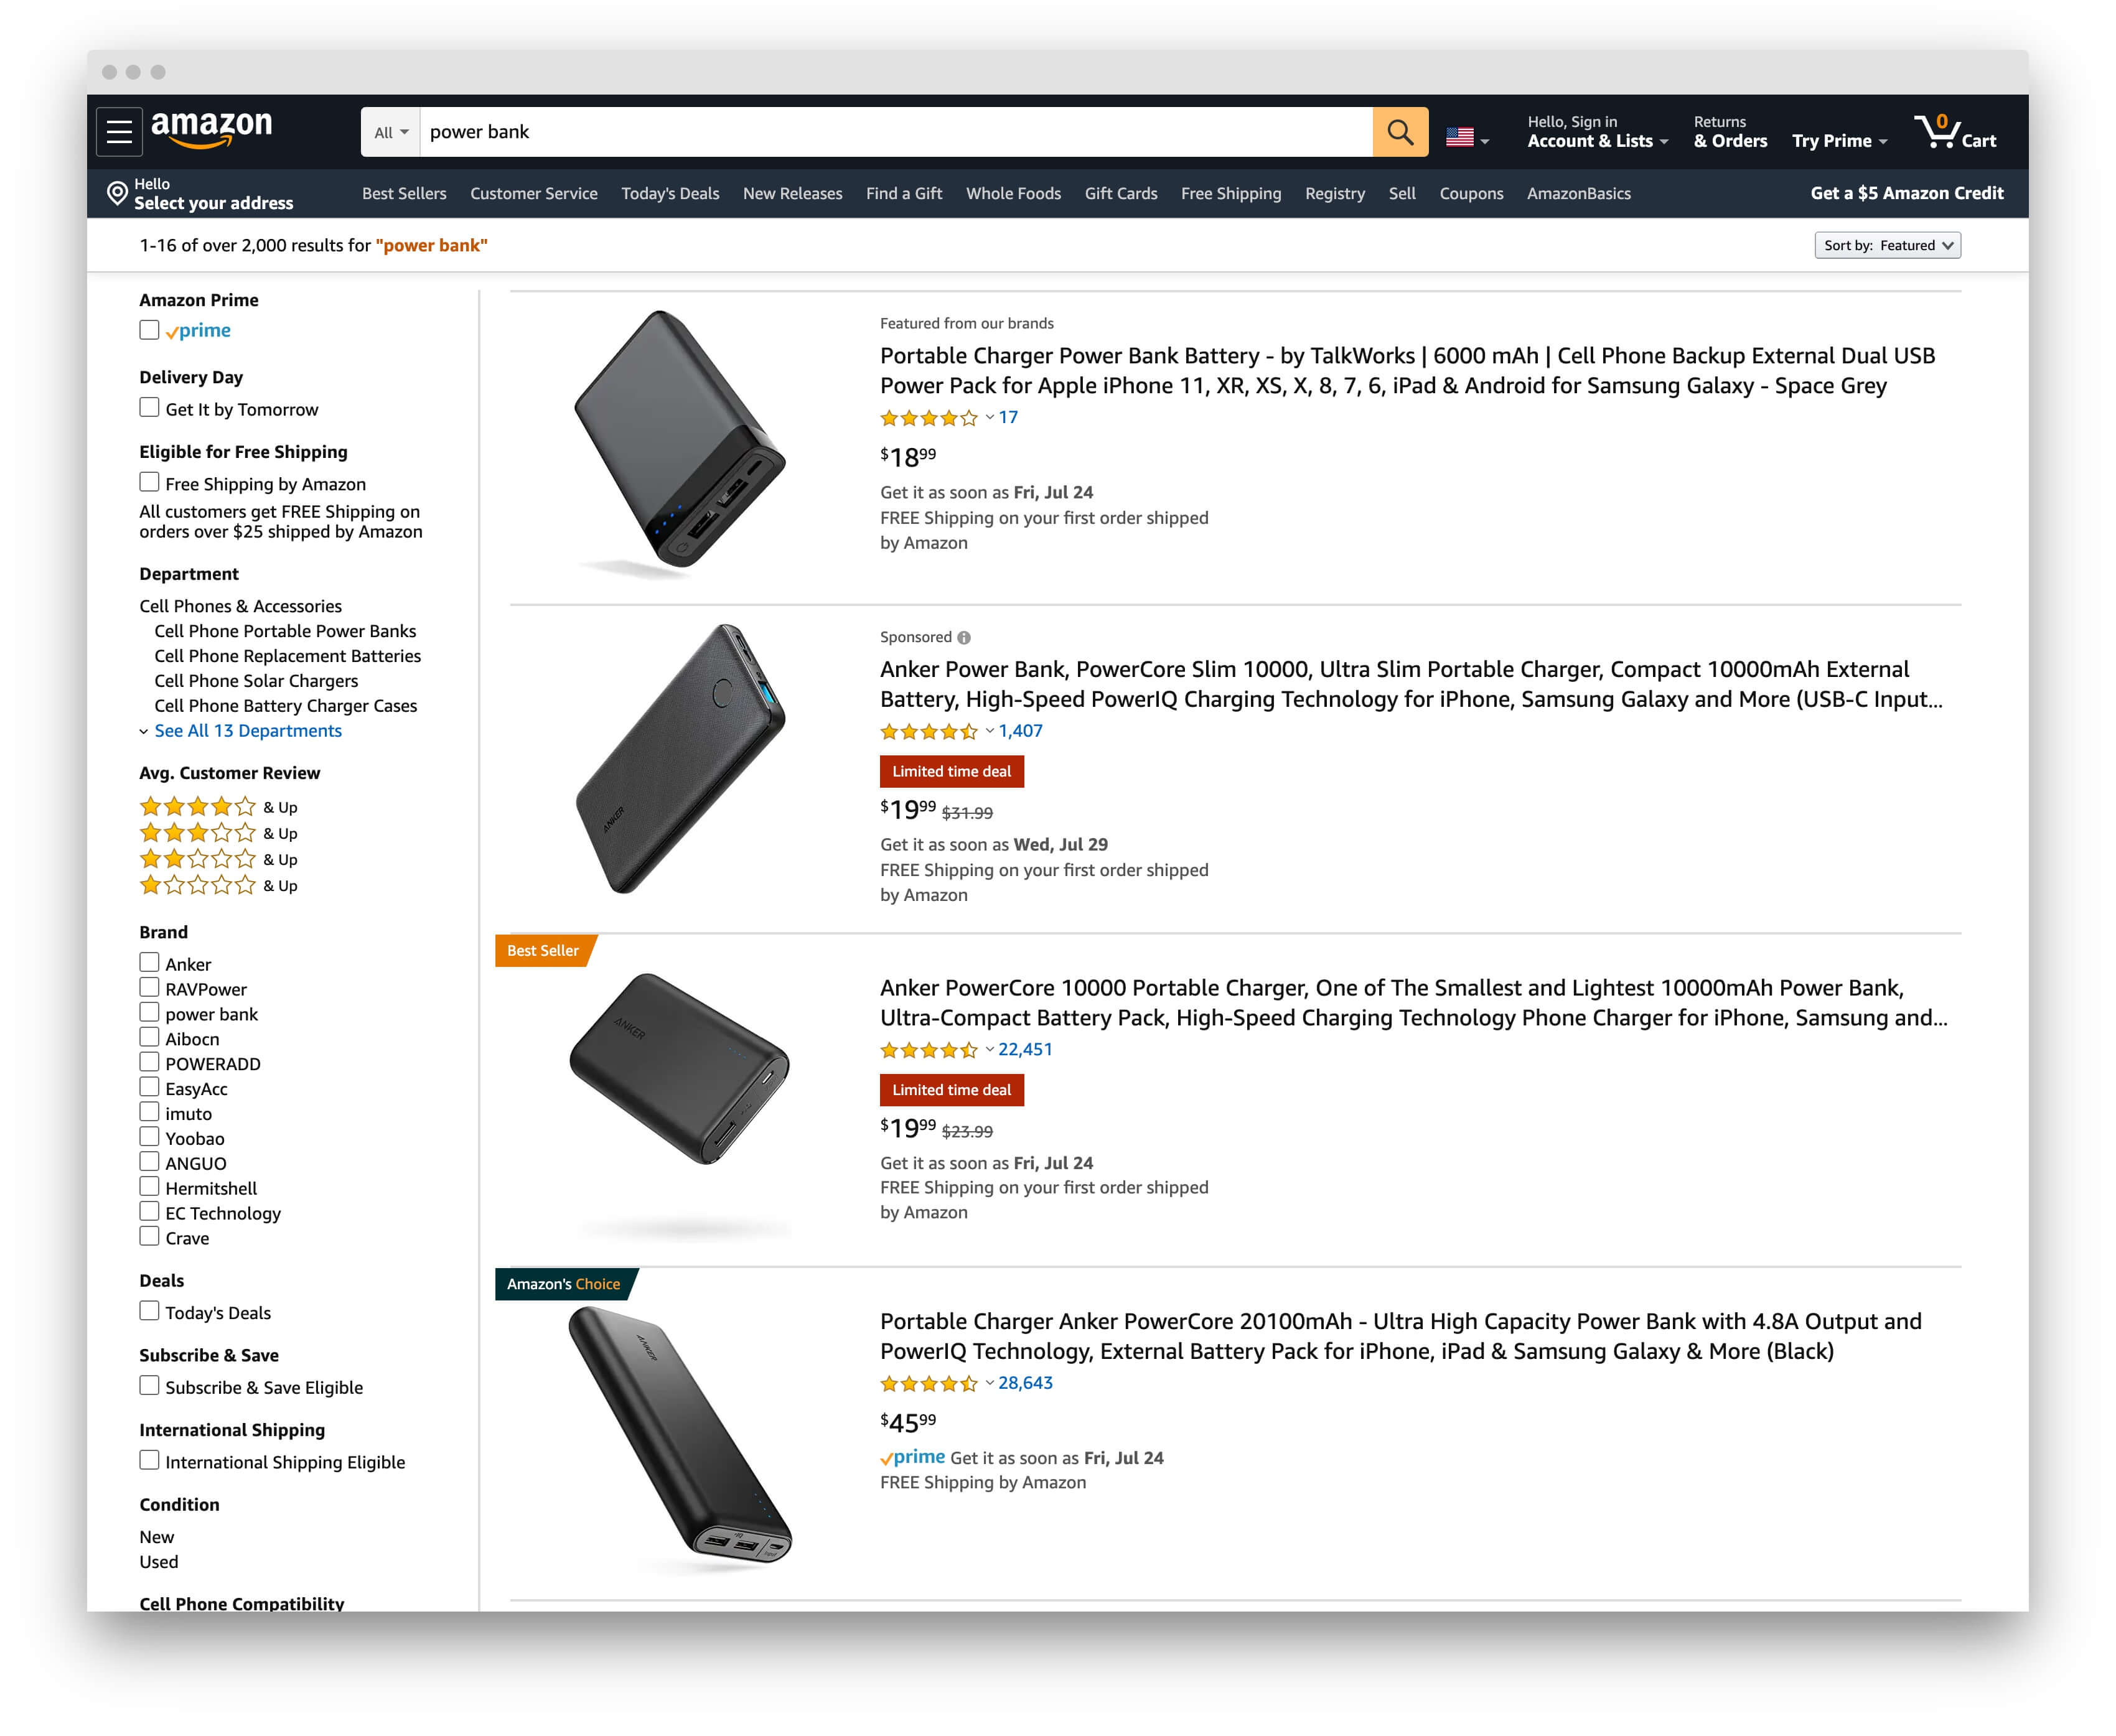 Amazon search for 'power bank'